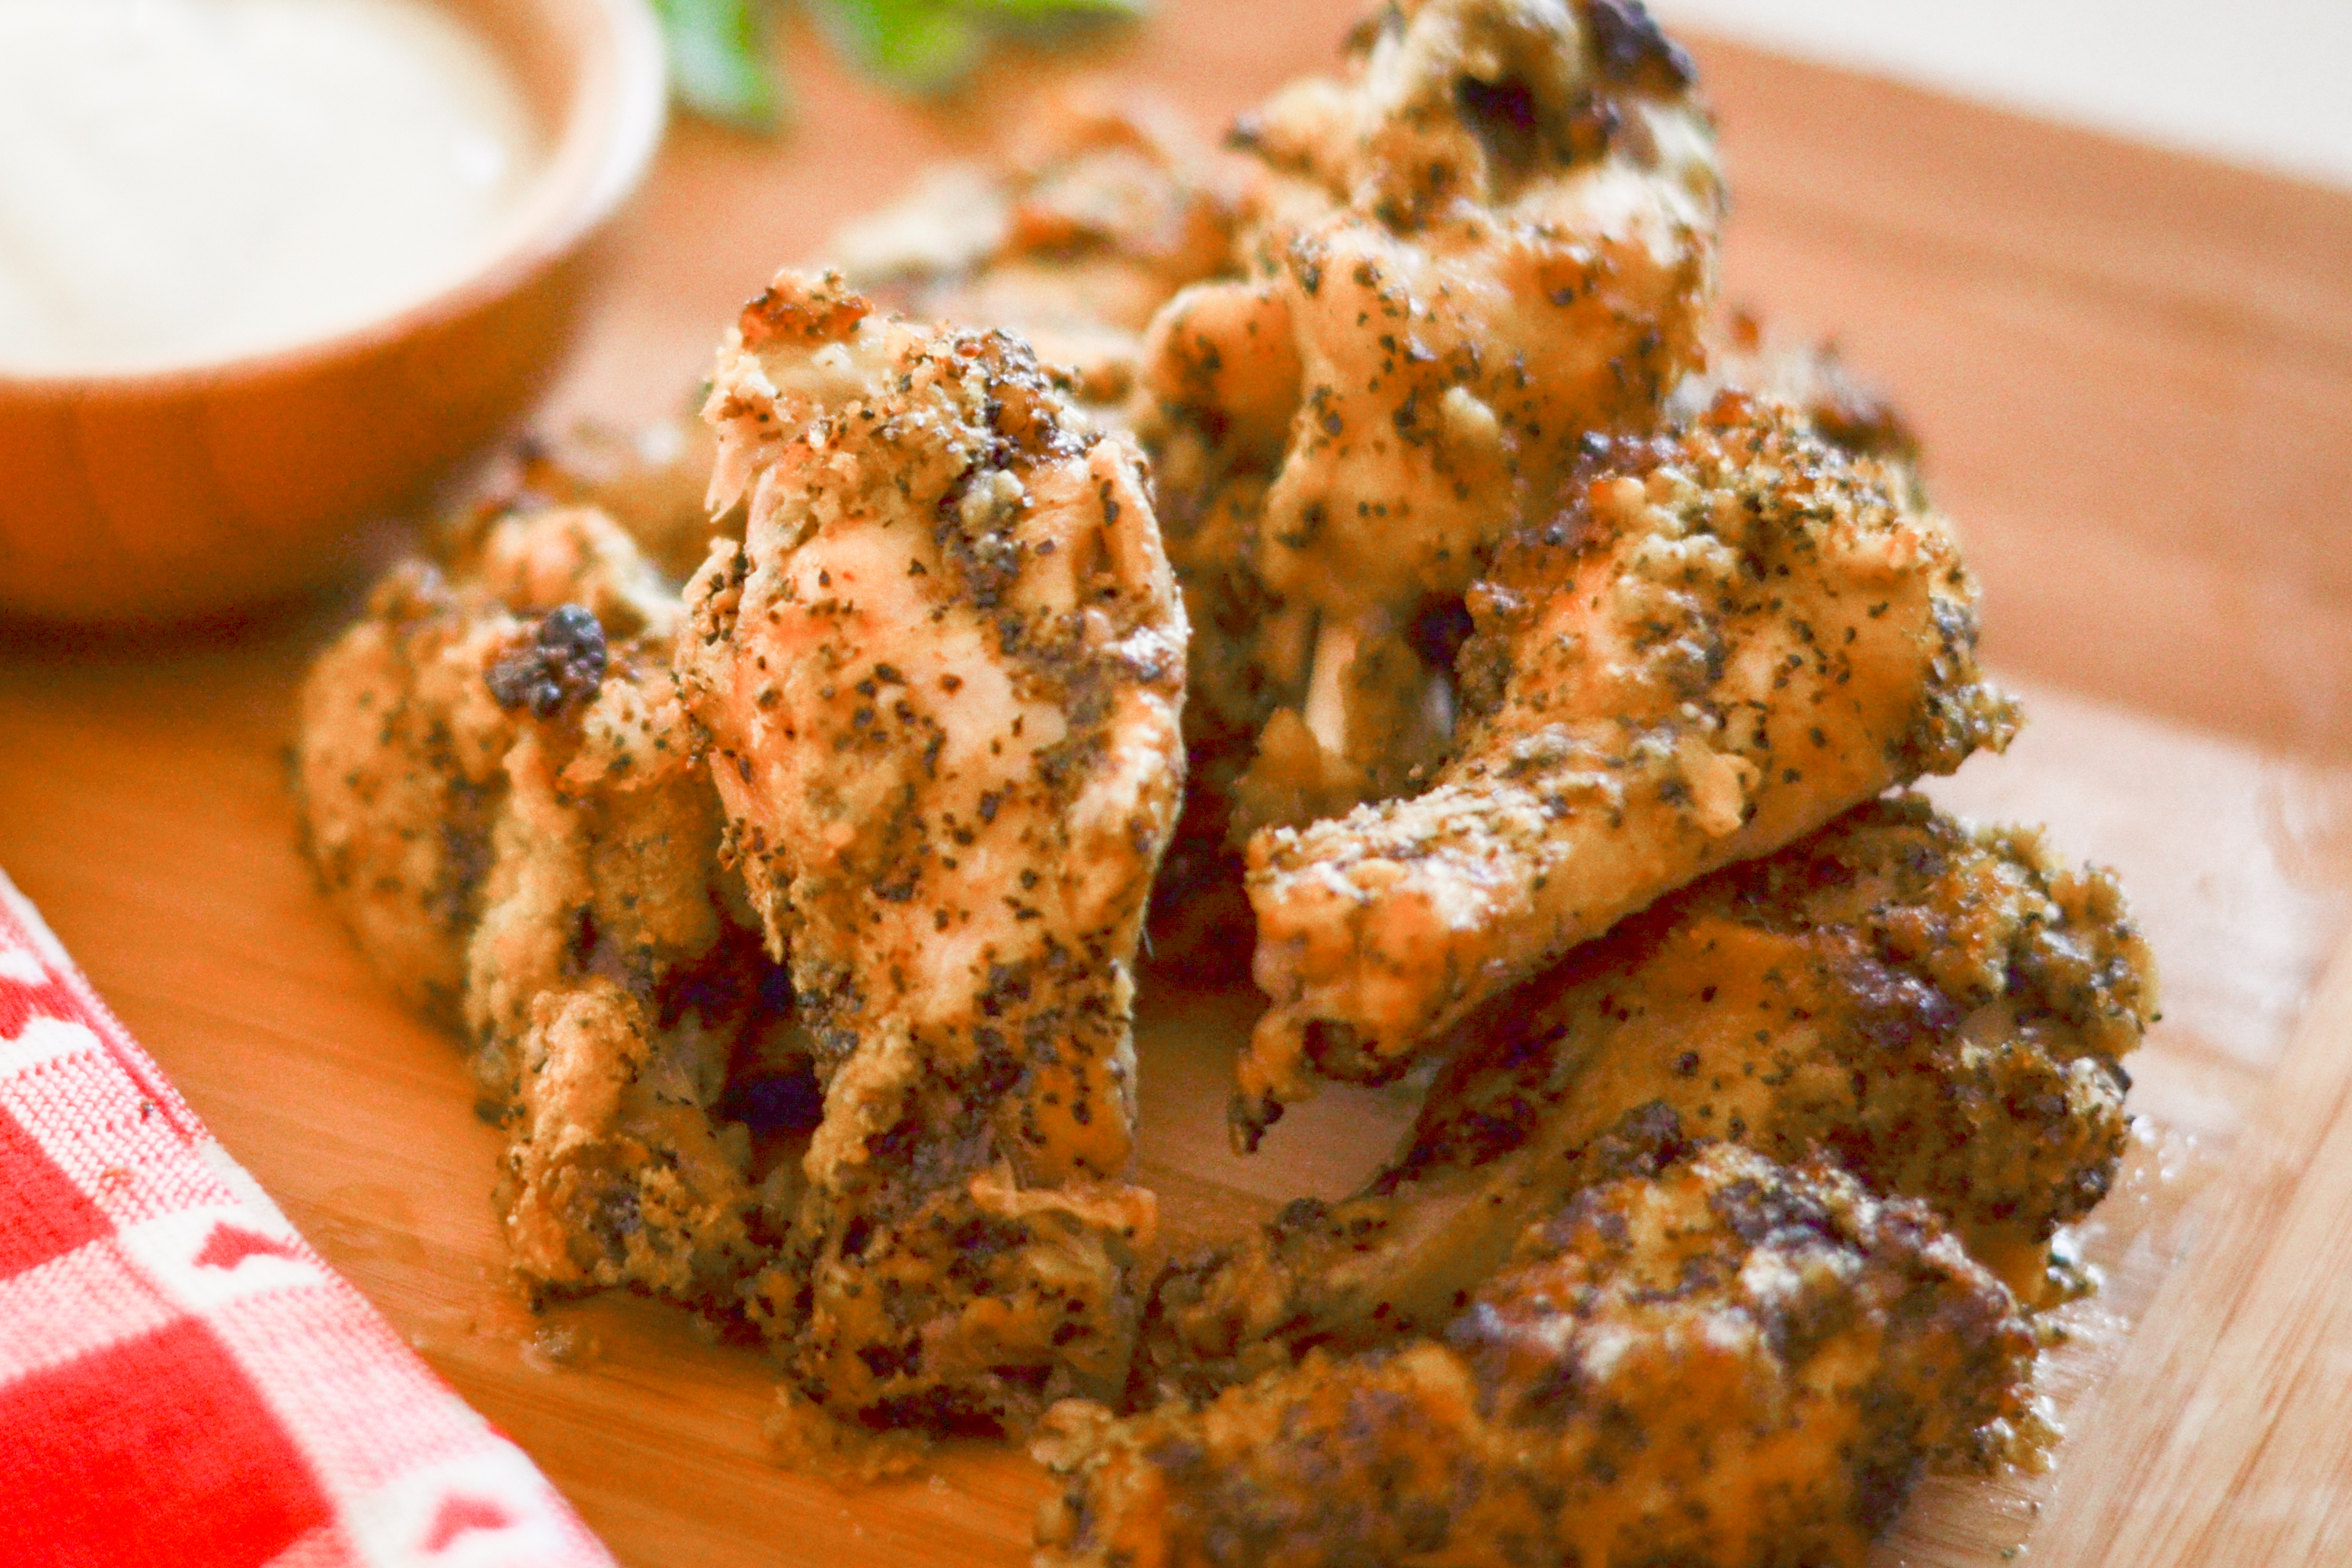 How to easily bake lemon pepper wings livestrong forumfinder Choice Image